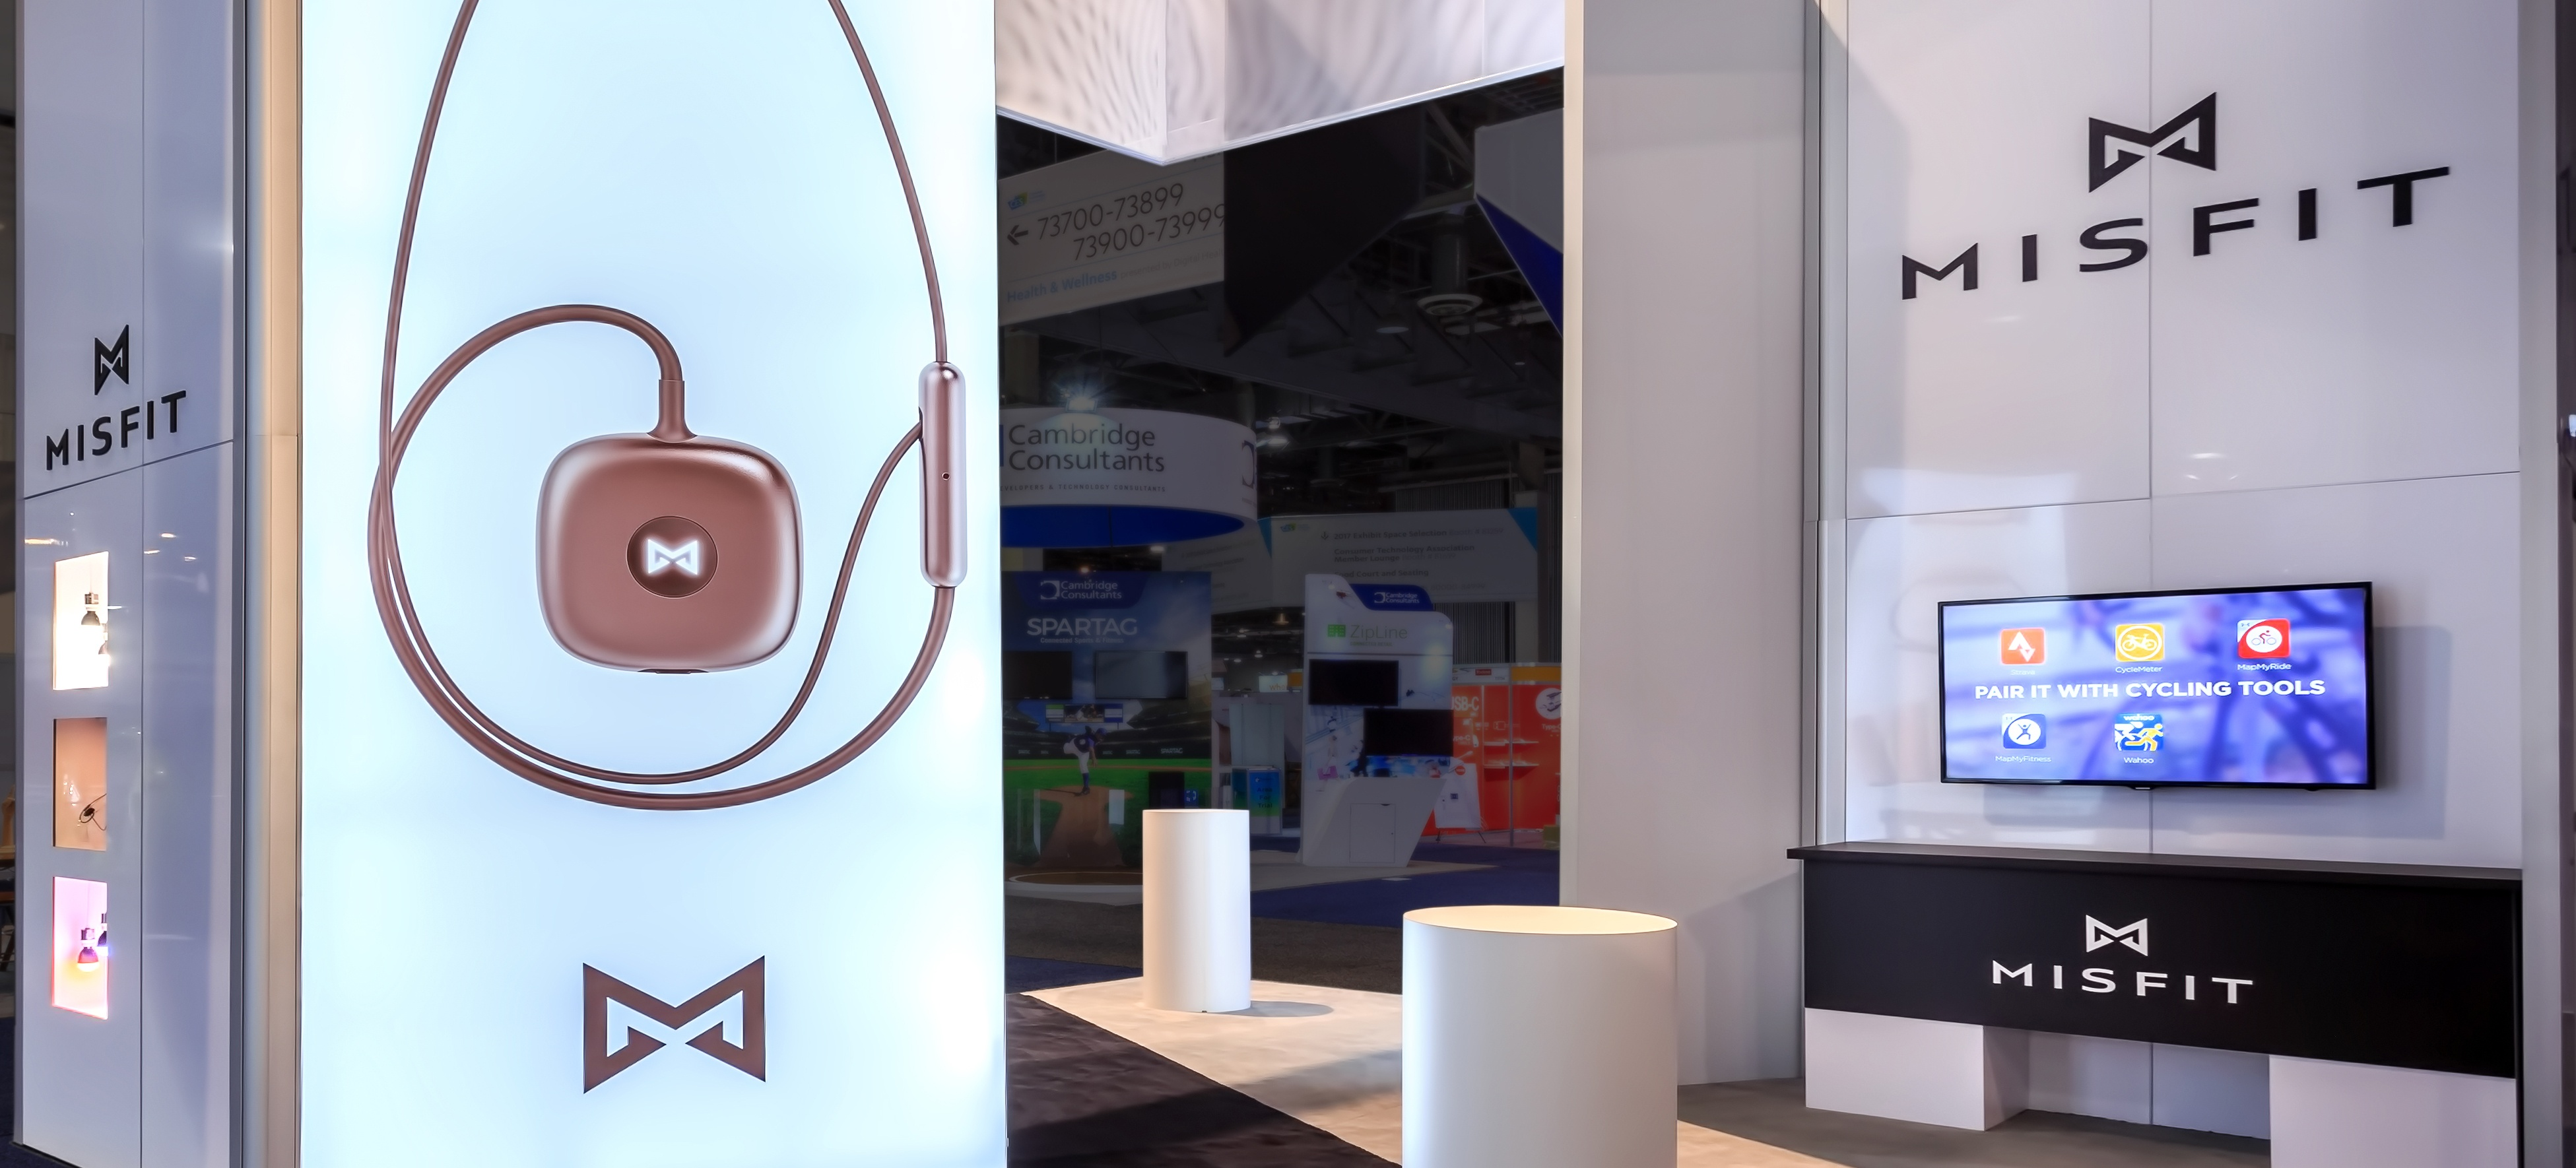 Hill & Partners Rental Branded Environment for Misfit CES